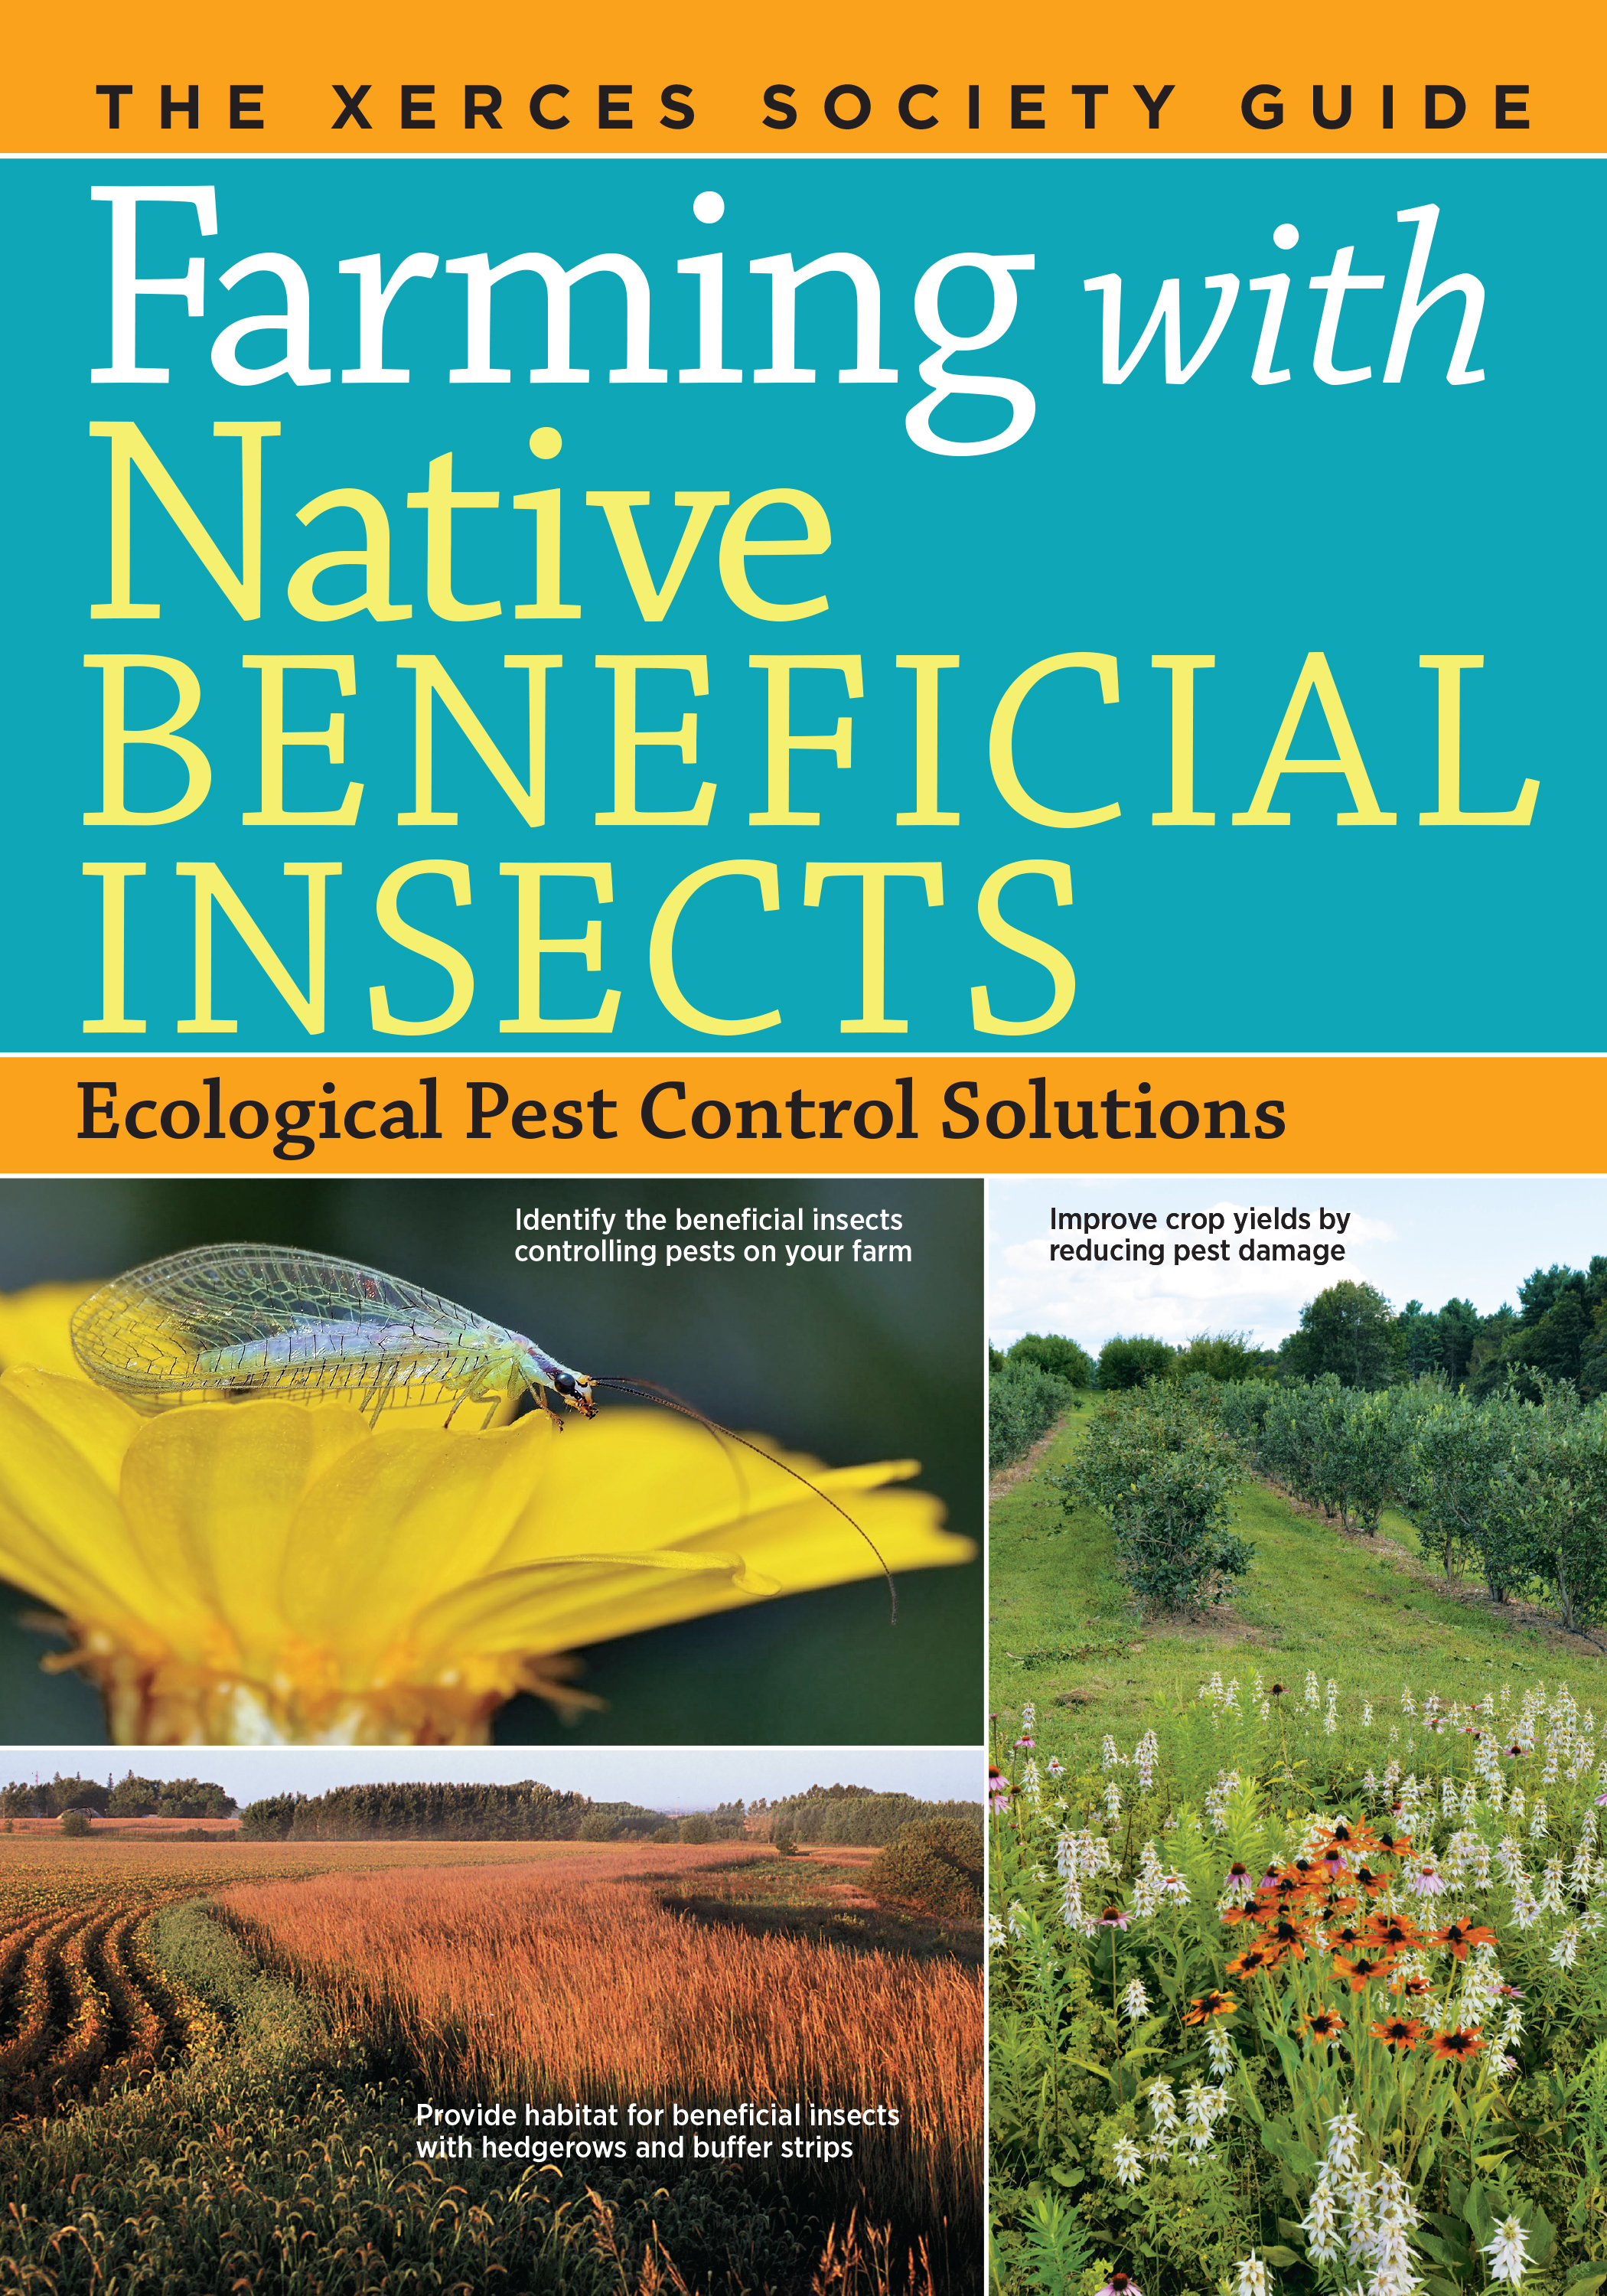 Farming with Native Beneficial Insects Ecological Pest Control Solutions - The Xerces Society